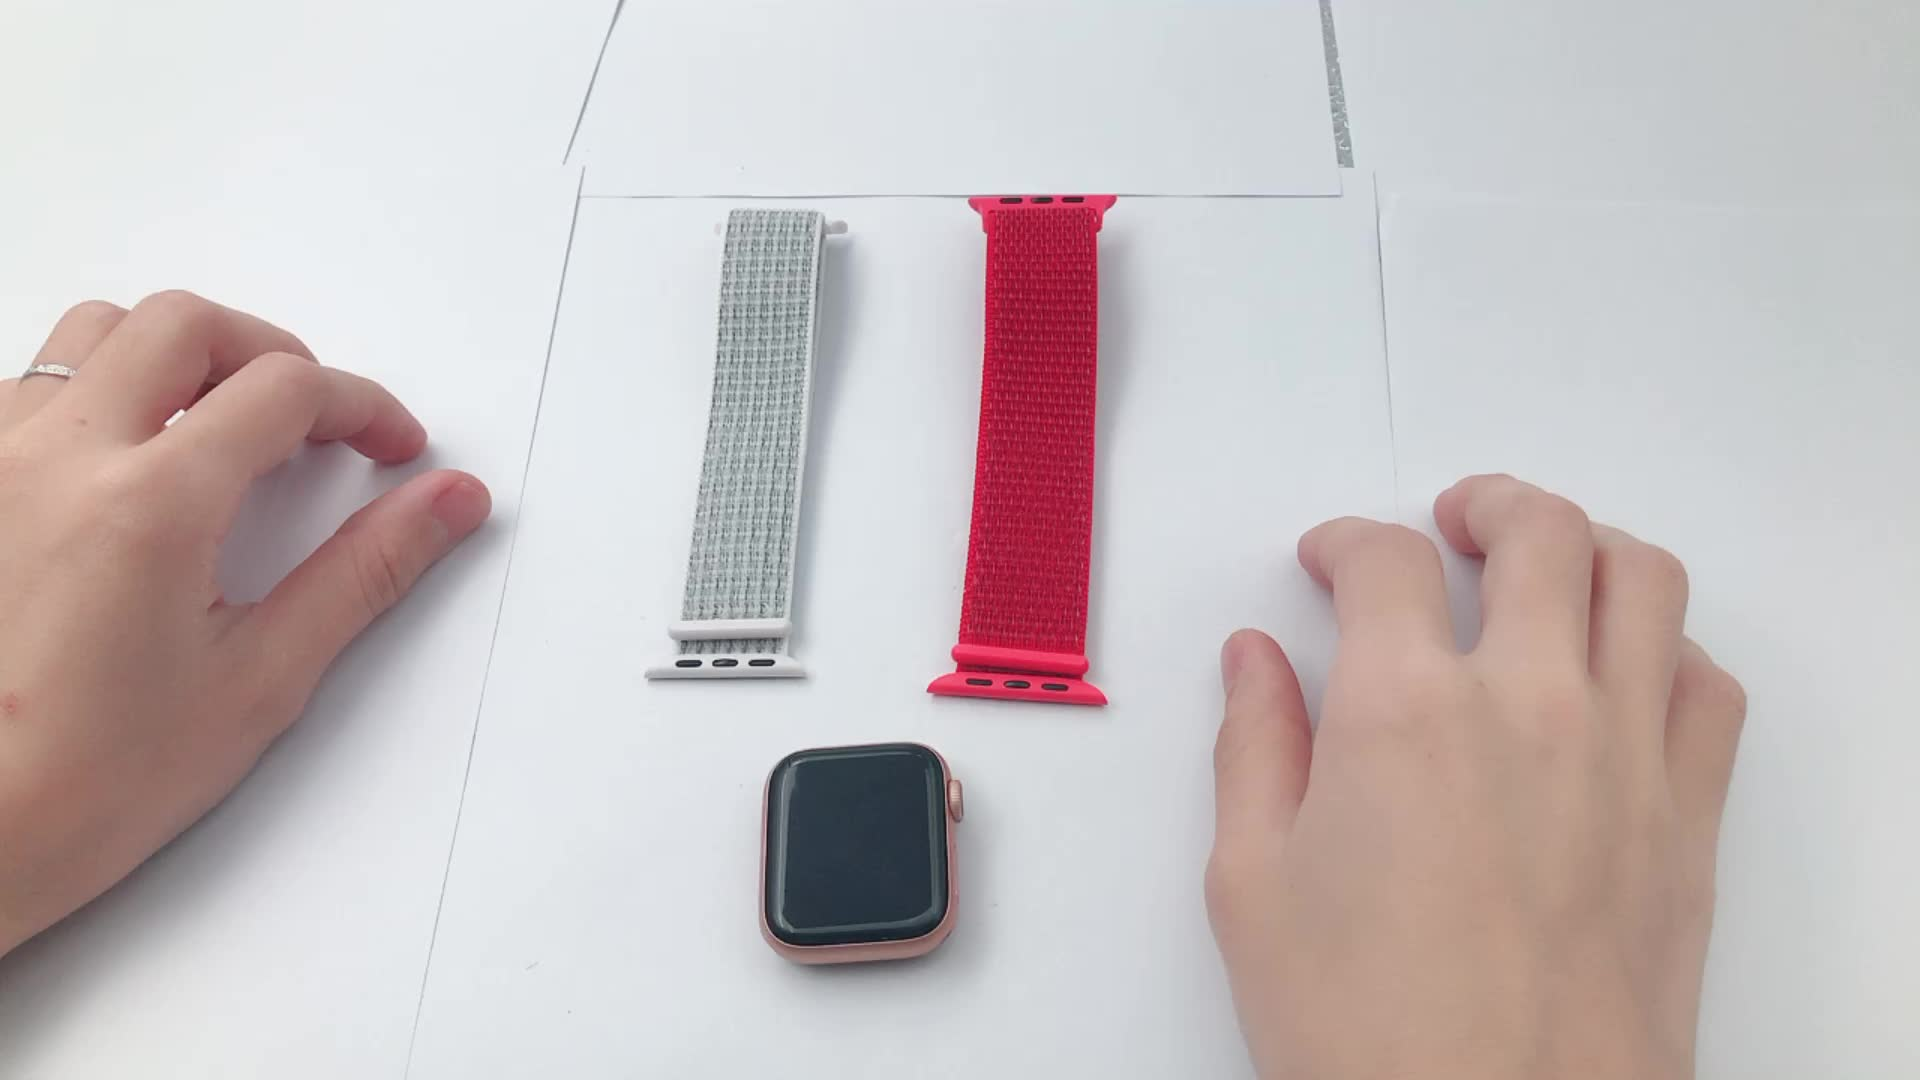 MACTOP New Nylon bands for Apple Watch band series 6/5/4, 38/42mm,40/44mm, for iwatch band with Hook and Loop Fastener